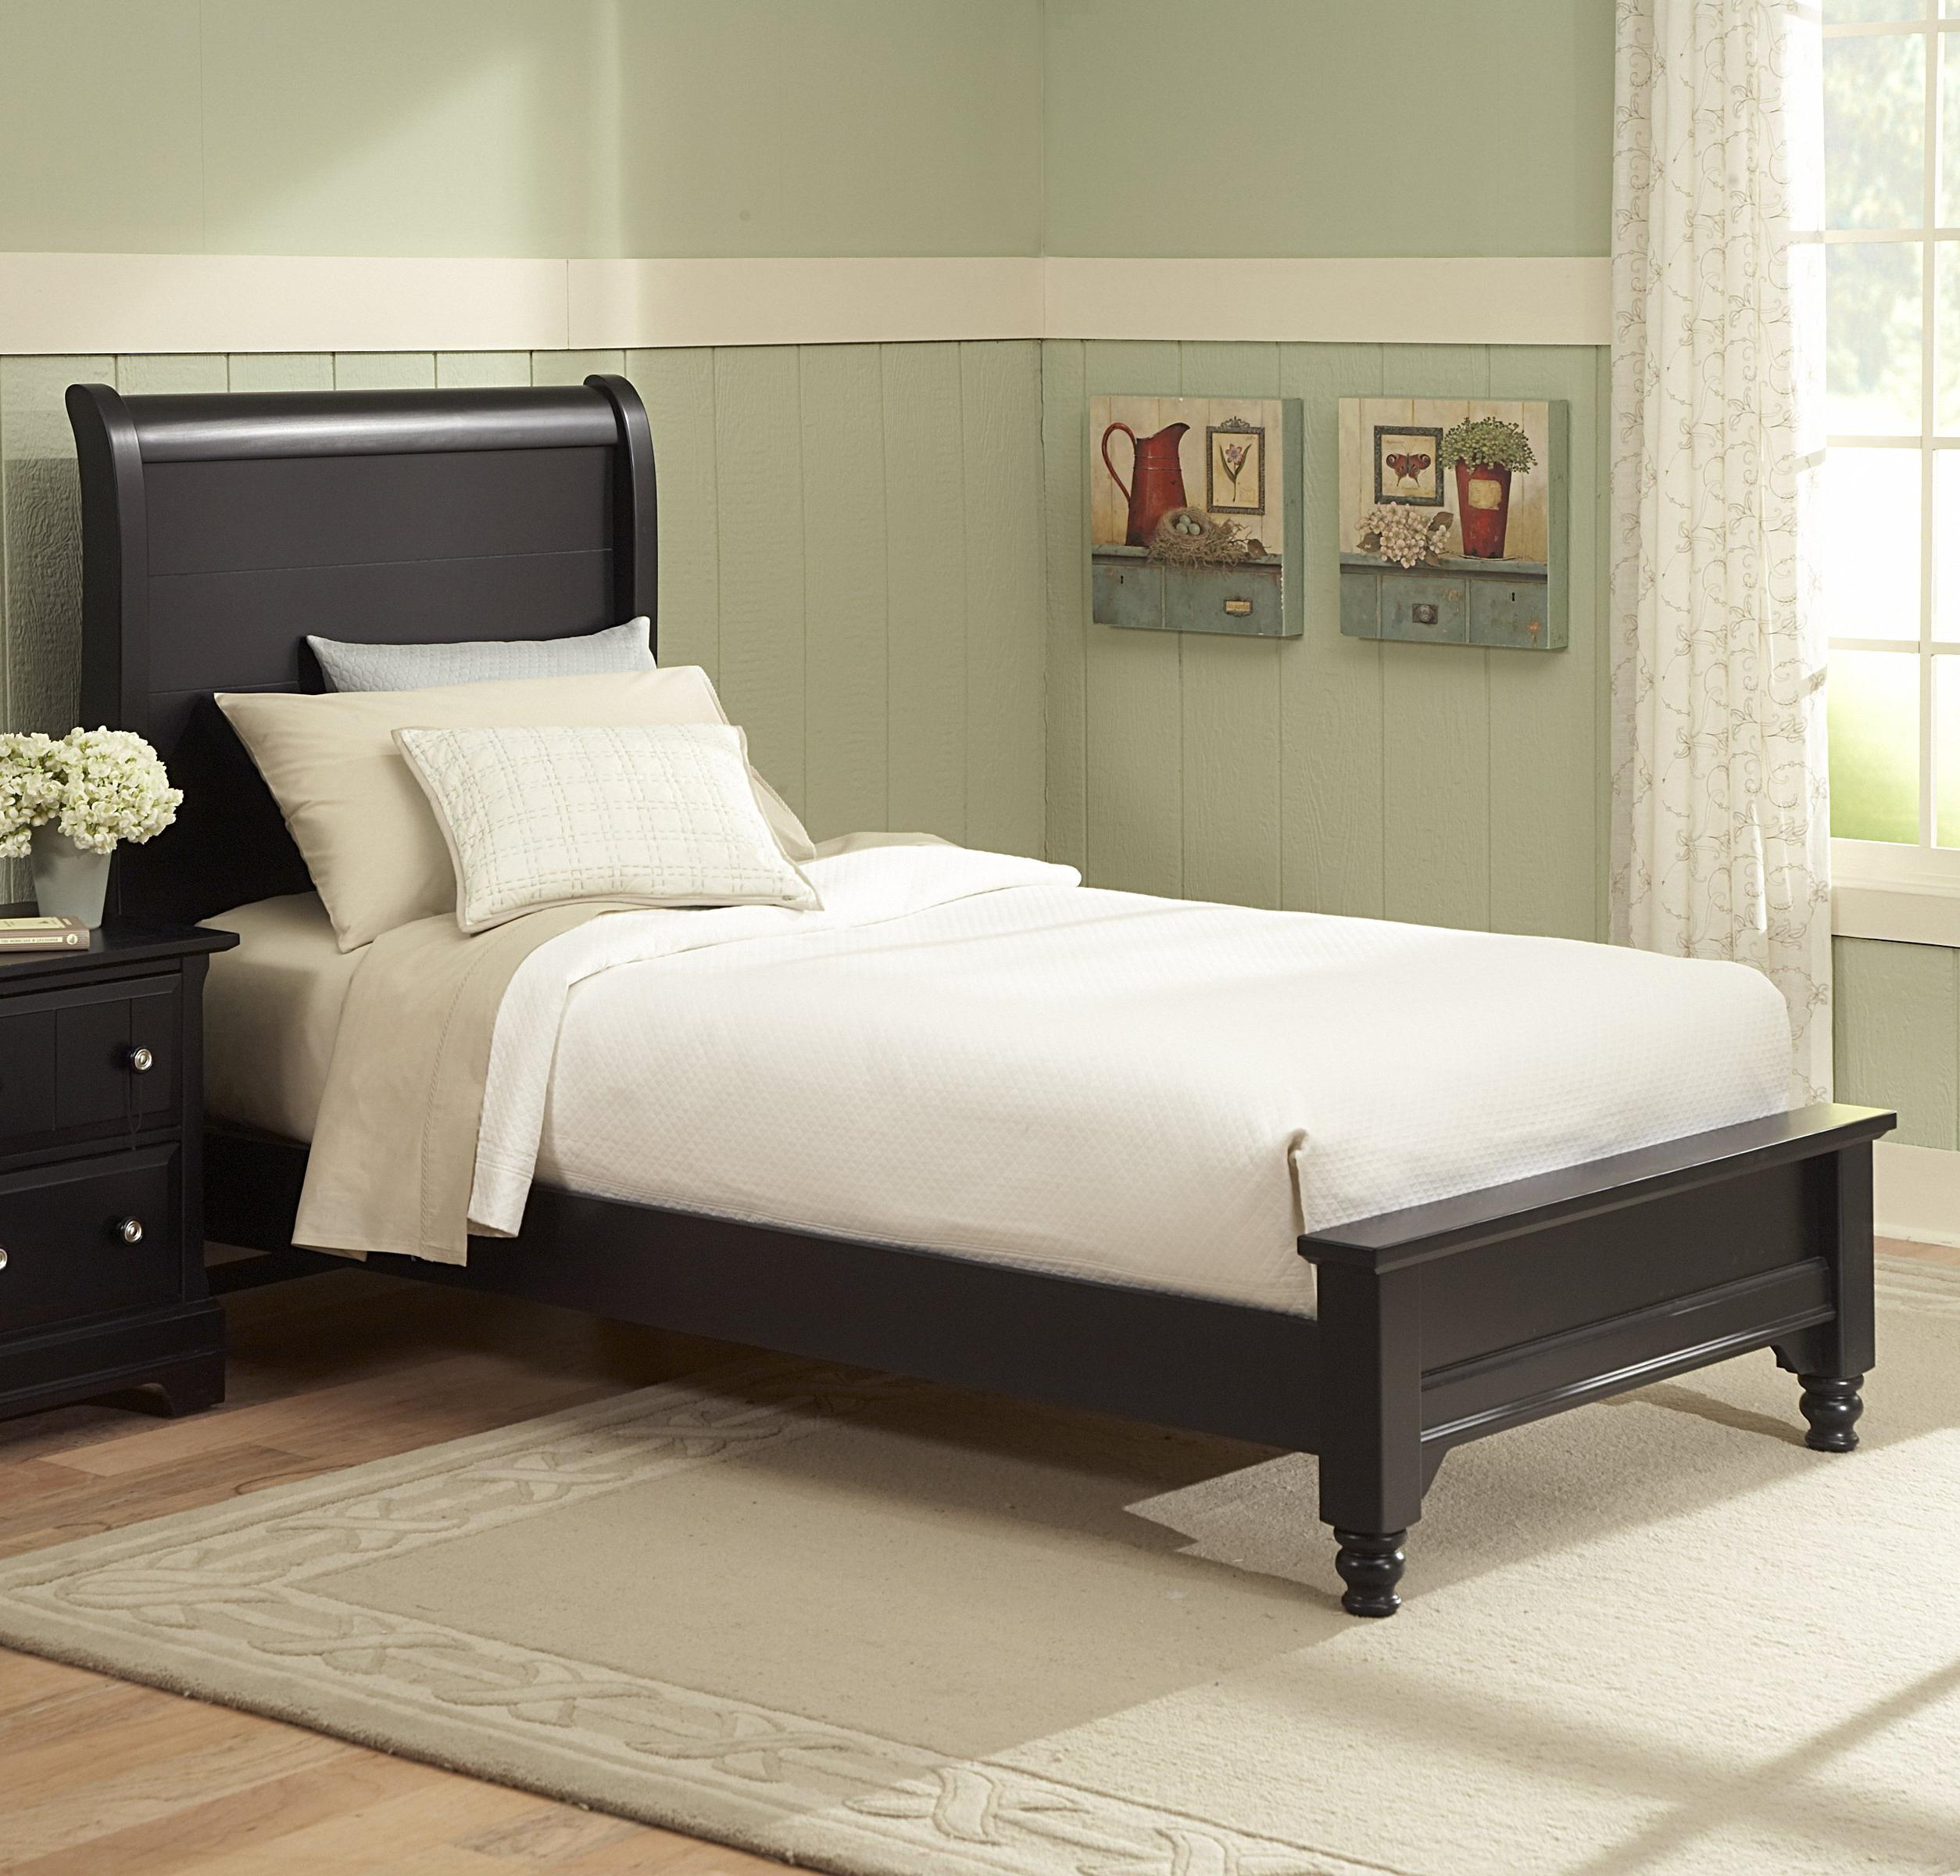 Vaughan bassett cottage full sleigh bed w low footboard for Panel bed mattress